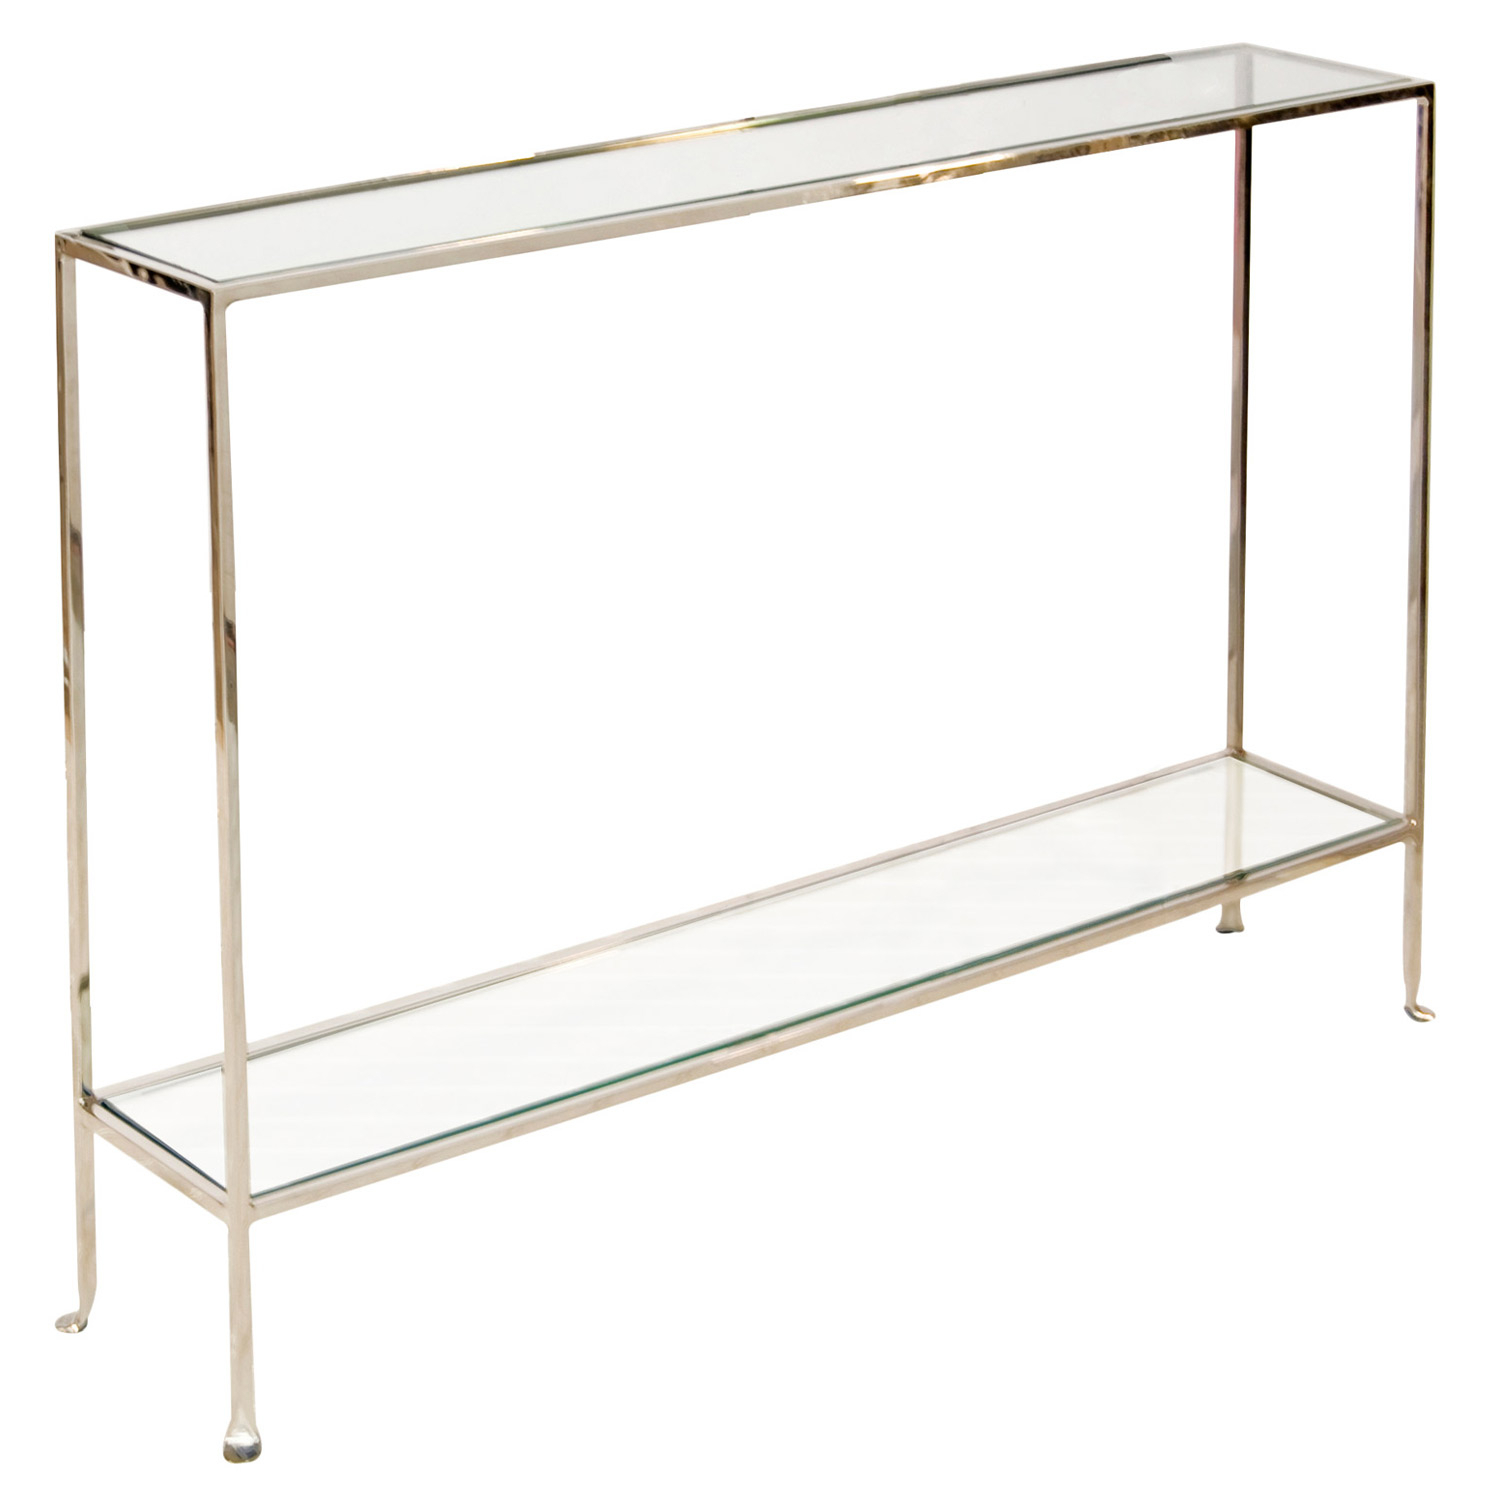 Console Tables Interesting 12 Inch Deep Console Table High Mission inside Silviano 84 Inch Console Tables (Image 14 of 30)